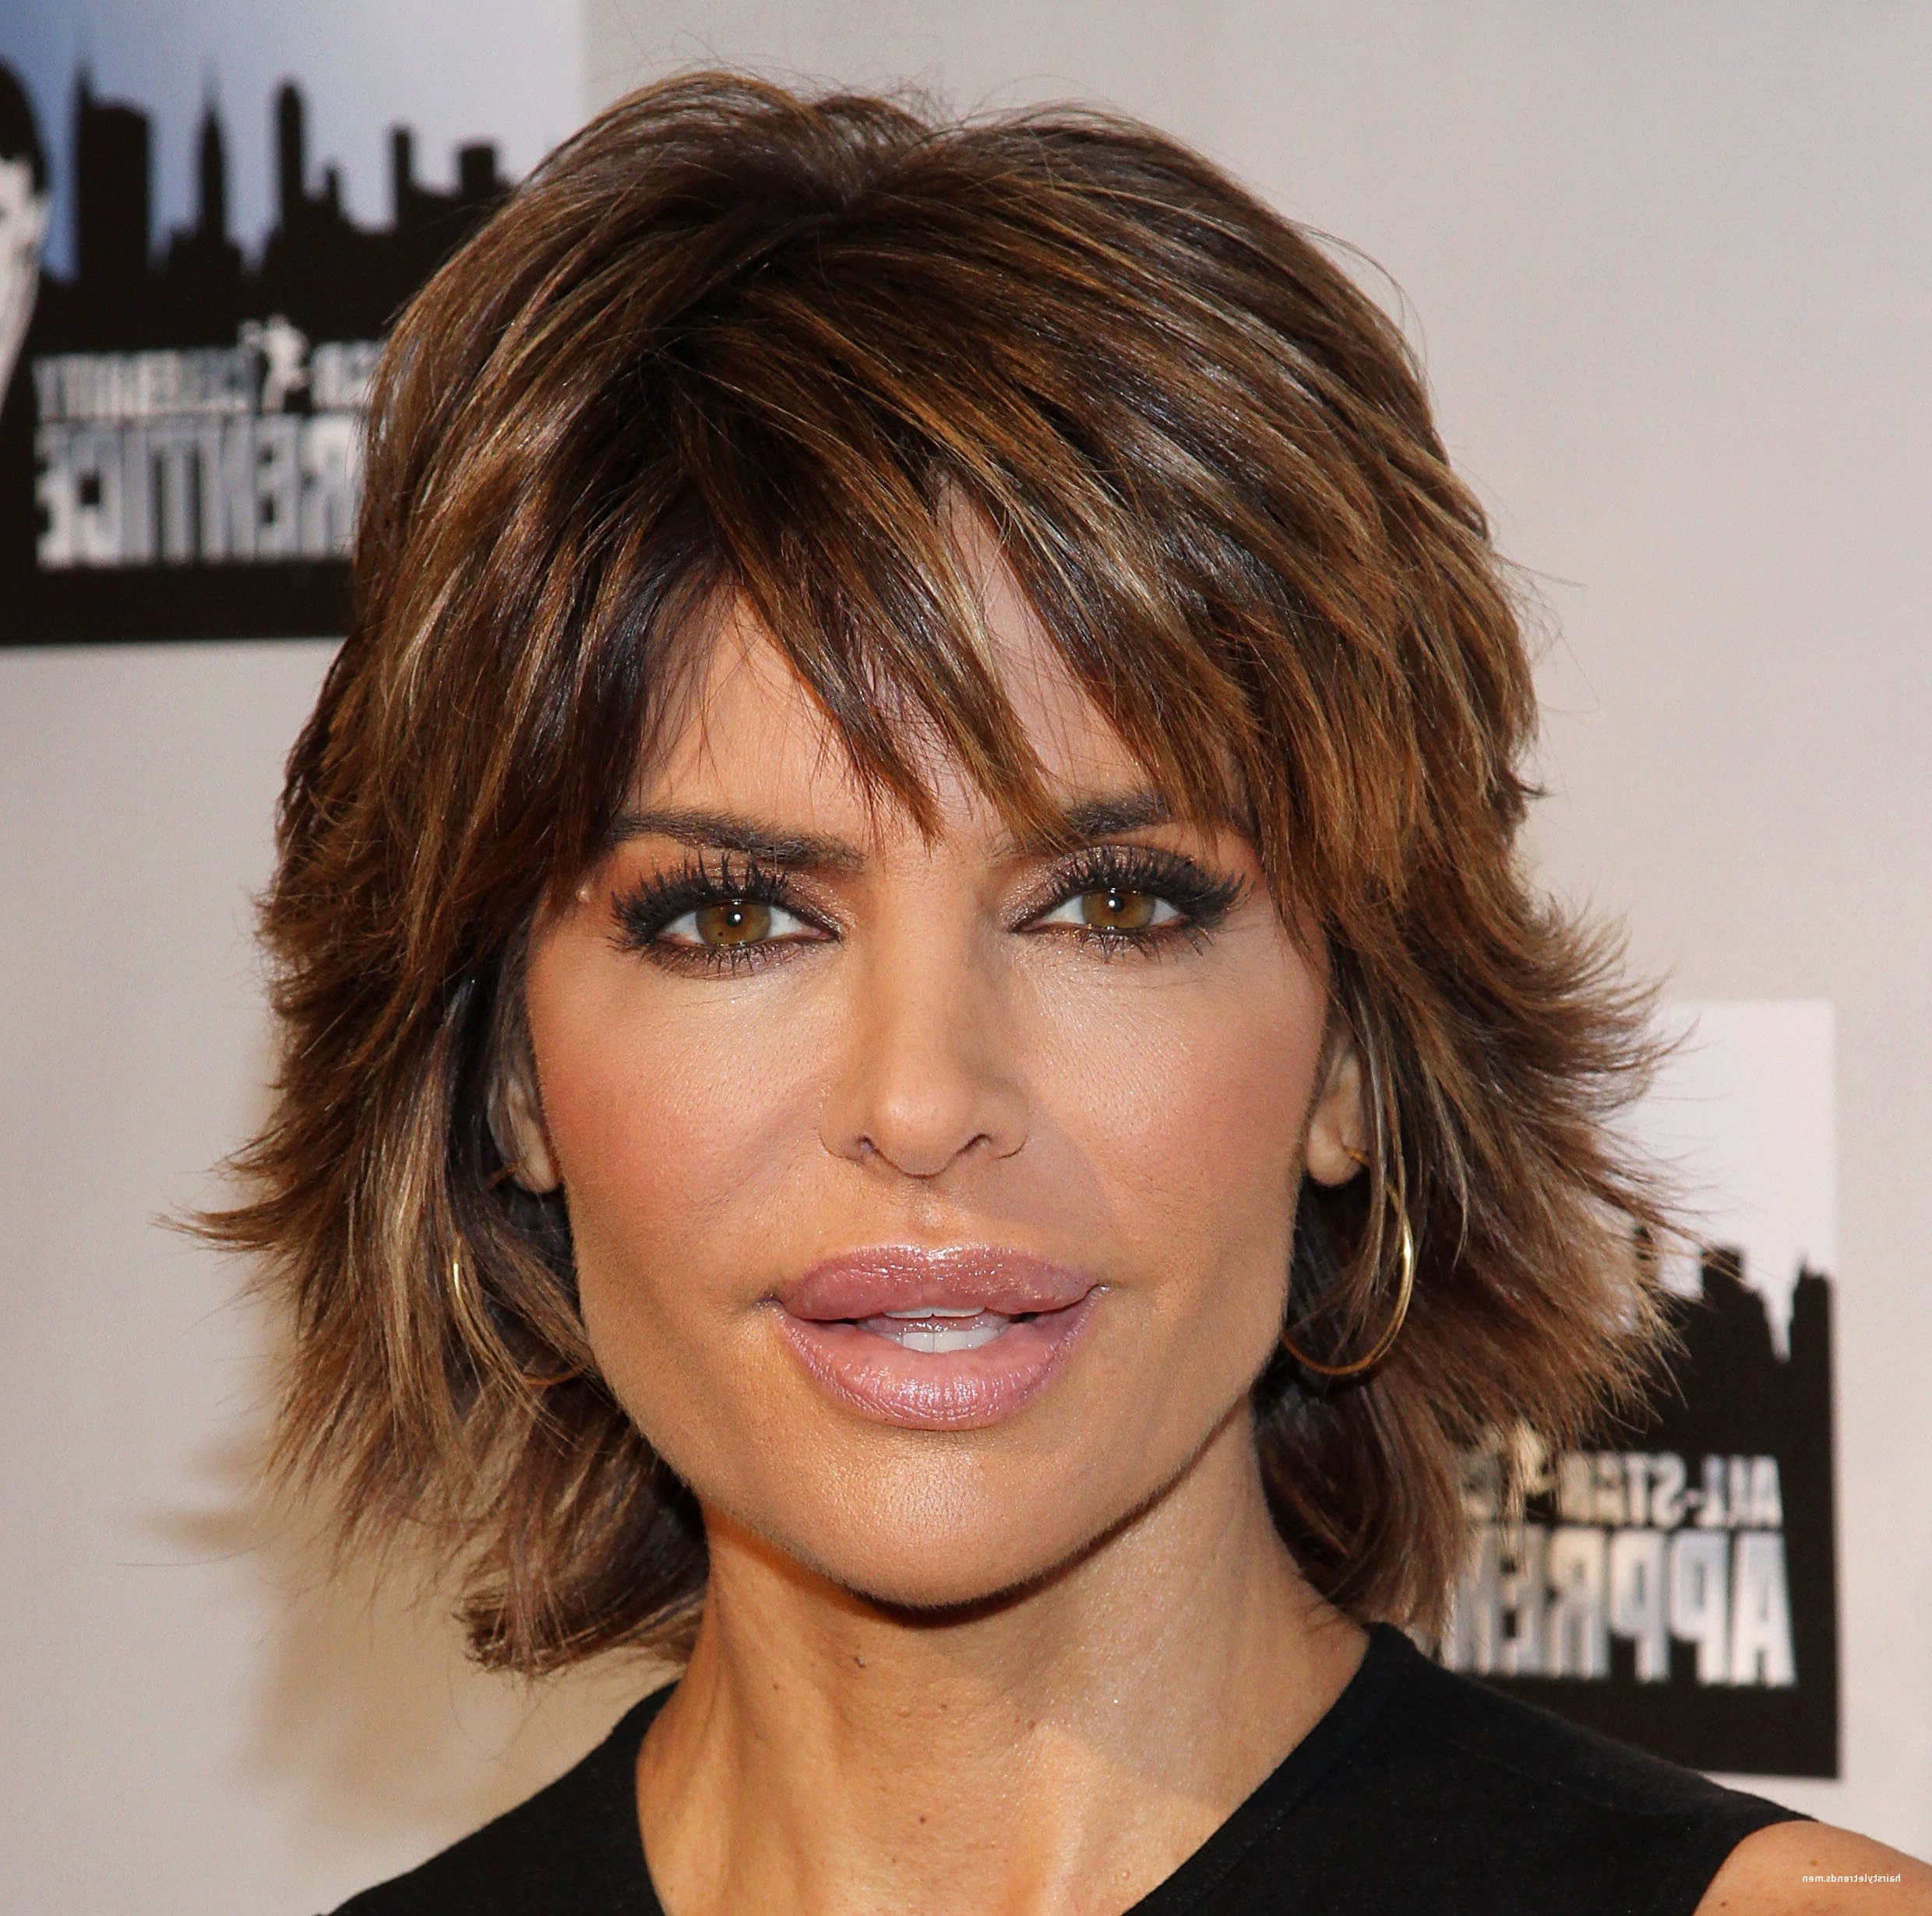 20 Sassy And Sultry Medium Shaggy Hairstyles – Haircuts & Hairstyles Regarding Favorite Medium Shag Hairstyles With A Wispy Fringe (View 6 of 20)